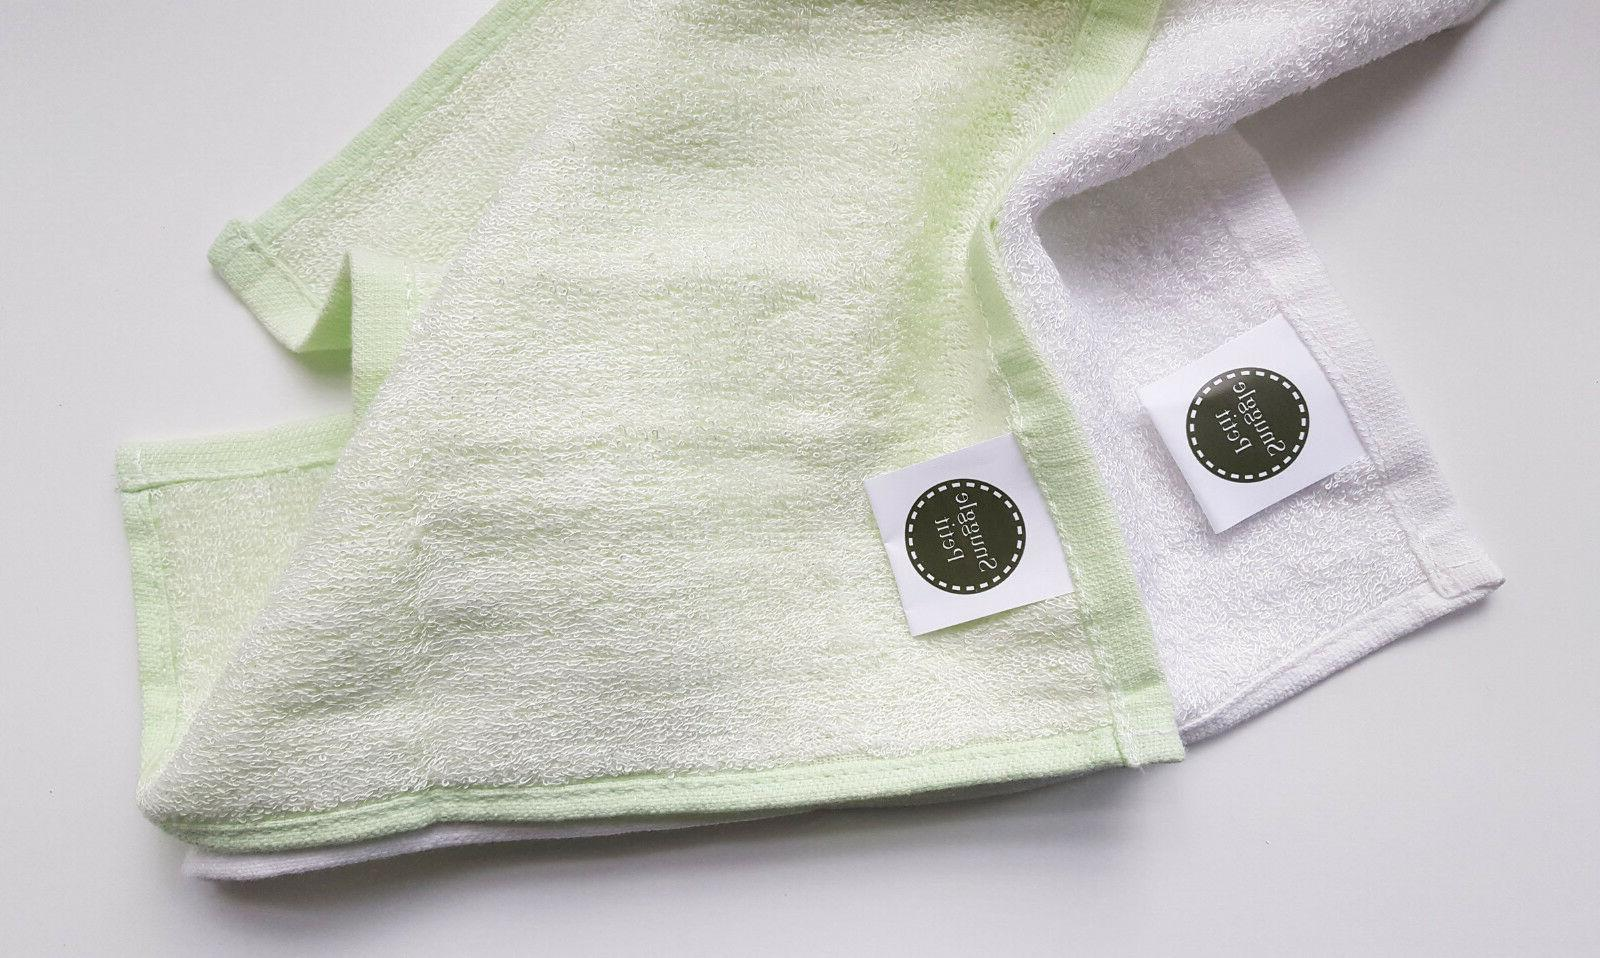 BAMBOO – 6x pack Soft 100% Bamboo,Towels,